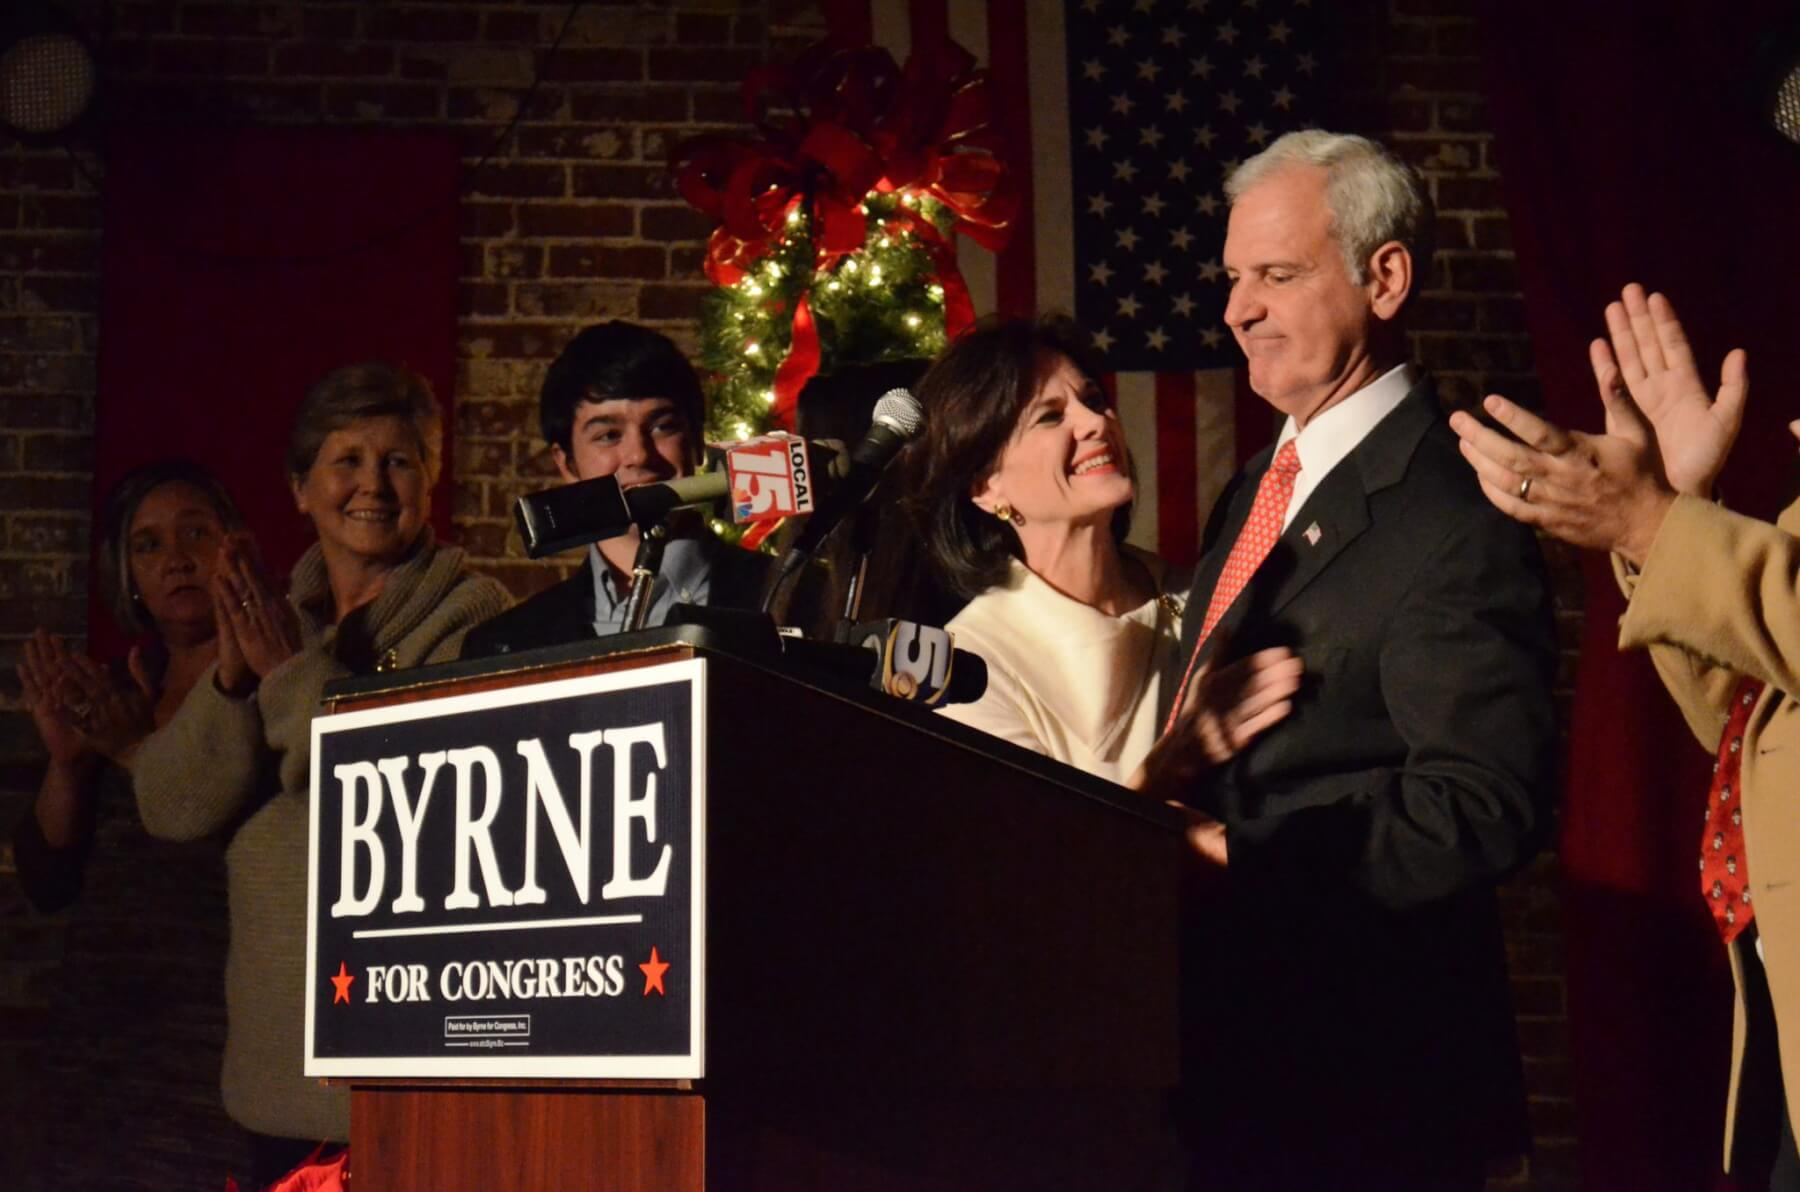 Byrne's real primary opponent: Donald Trump